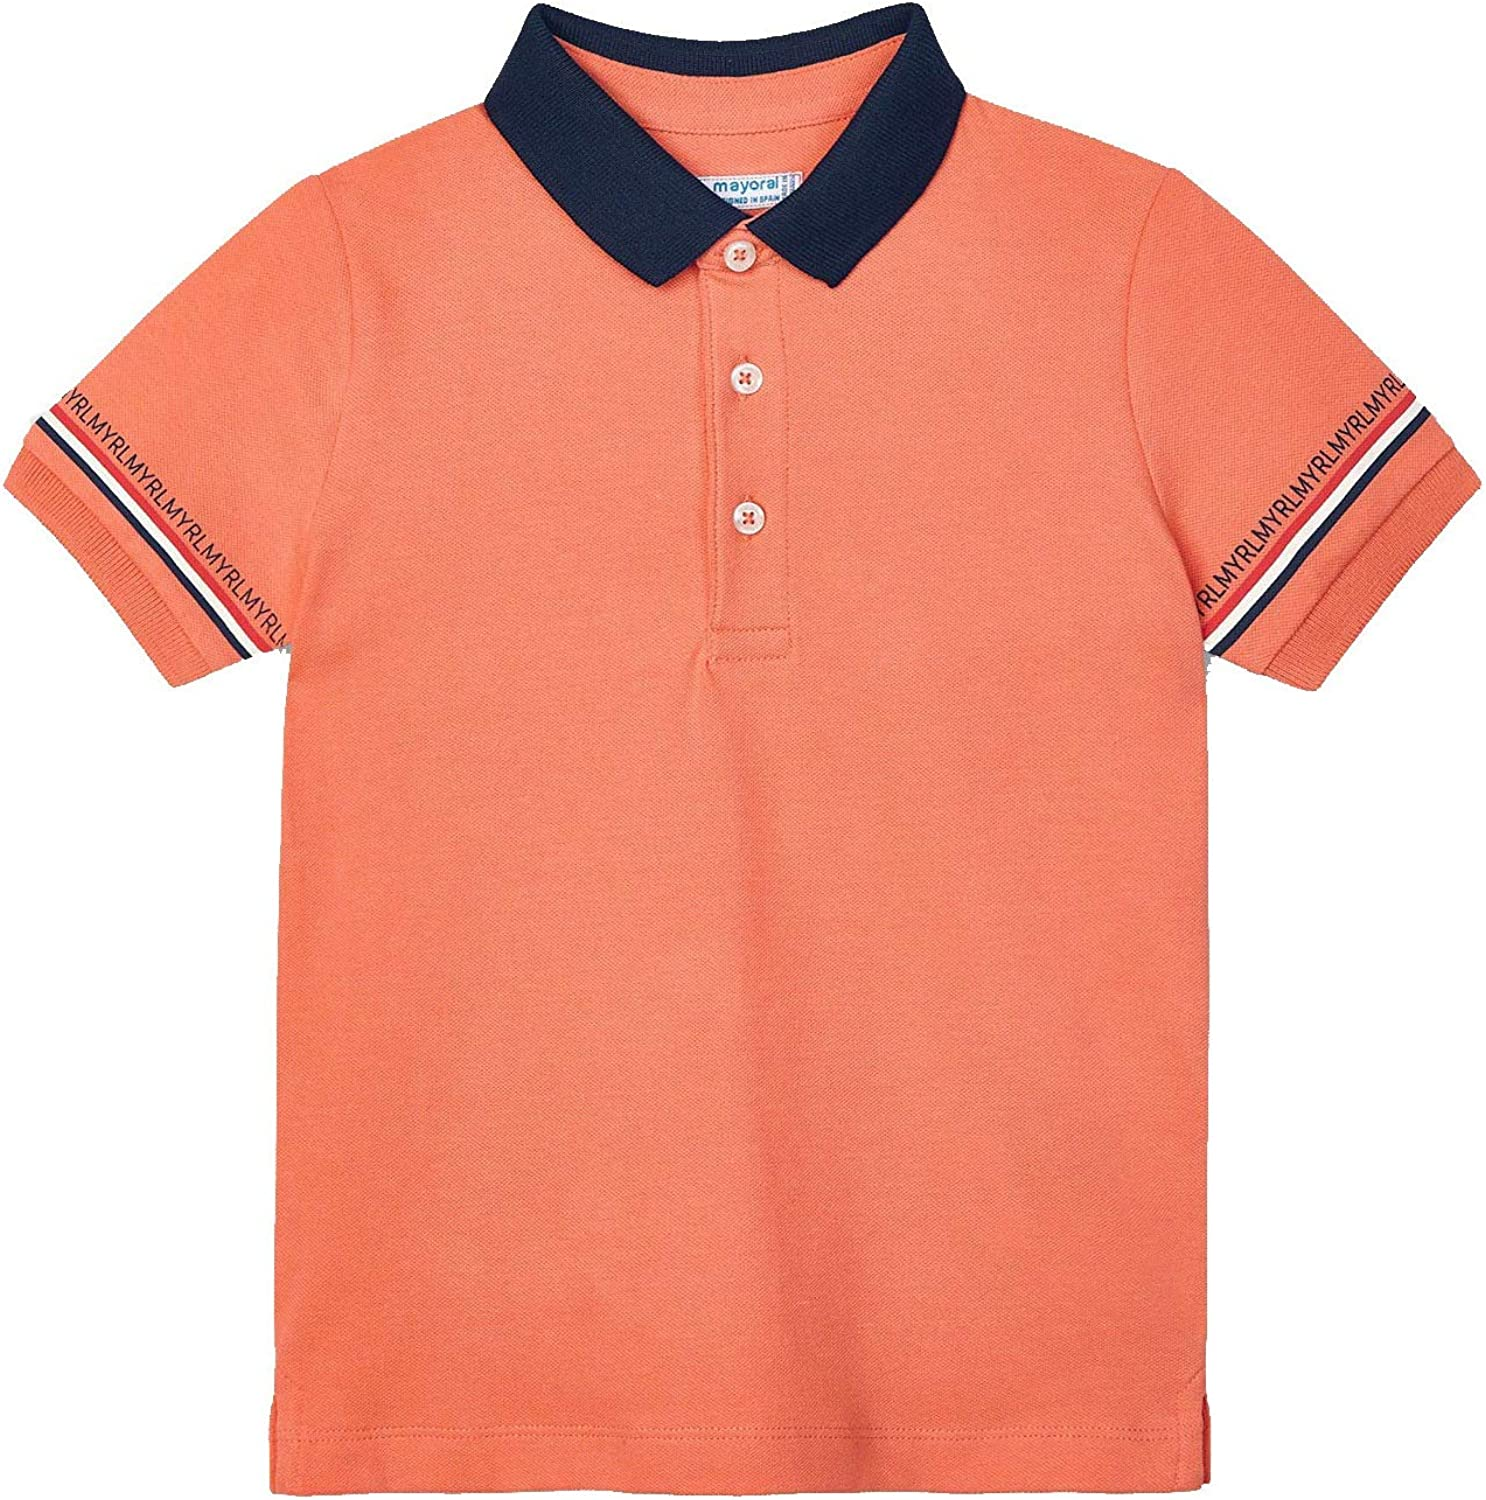 Mayoral - s/s semi Basic Polo for Boys - 3103, Apricot